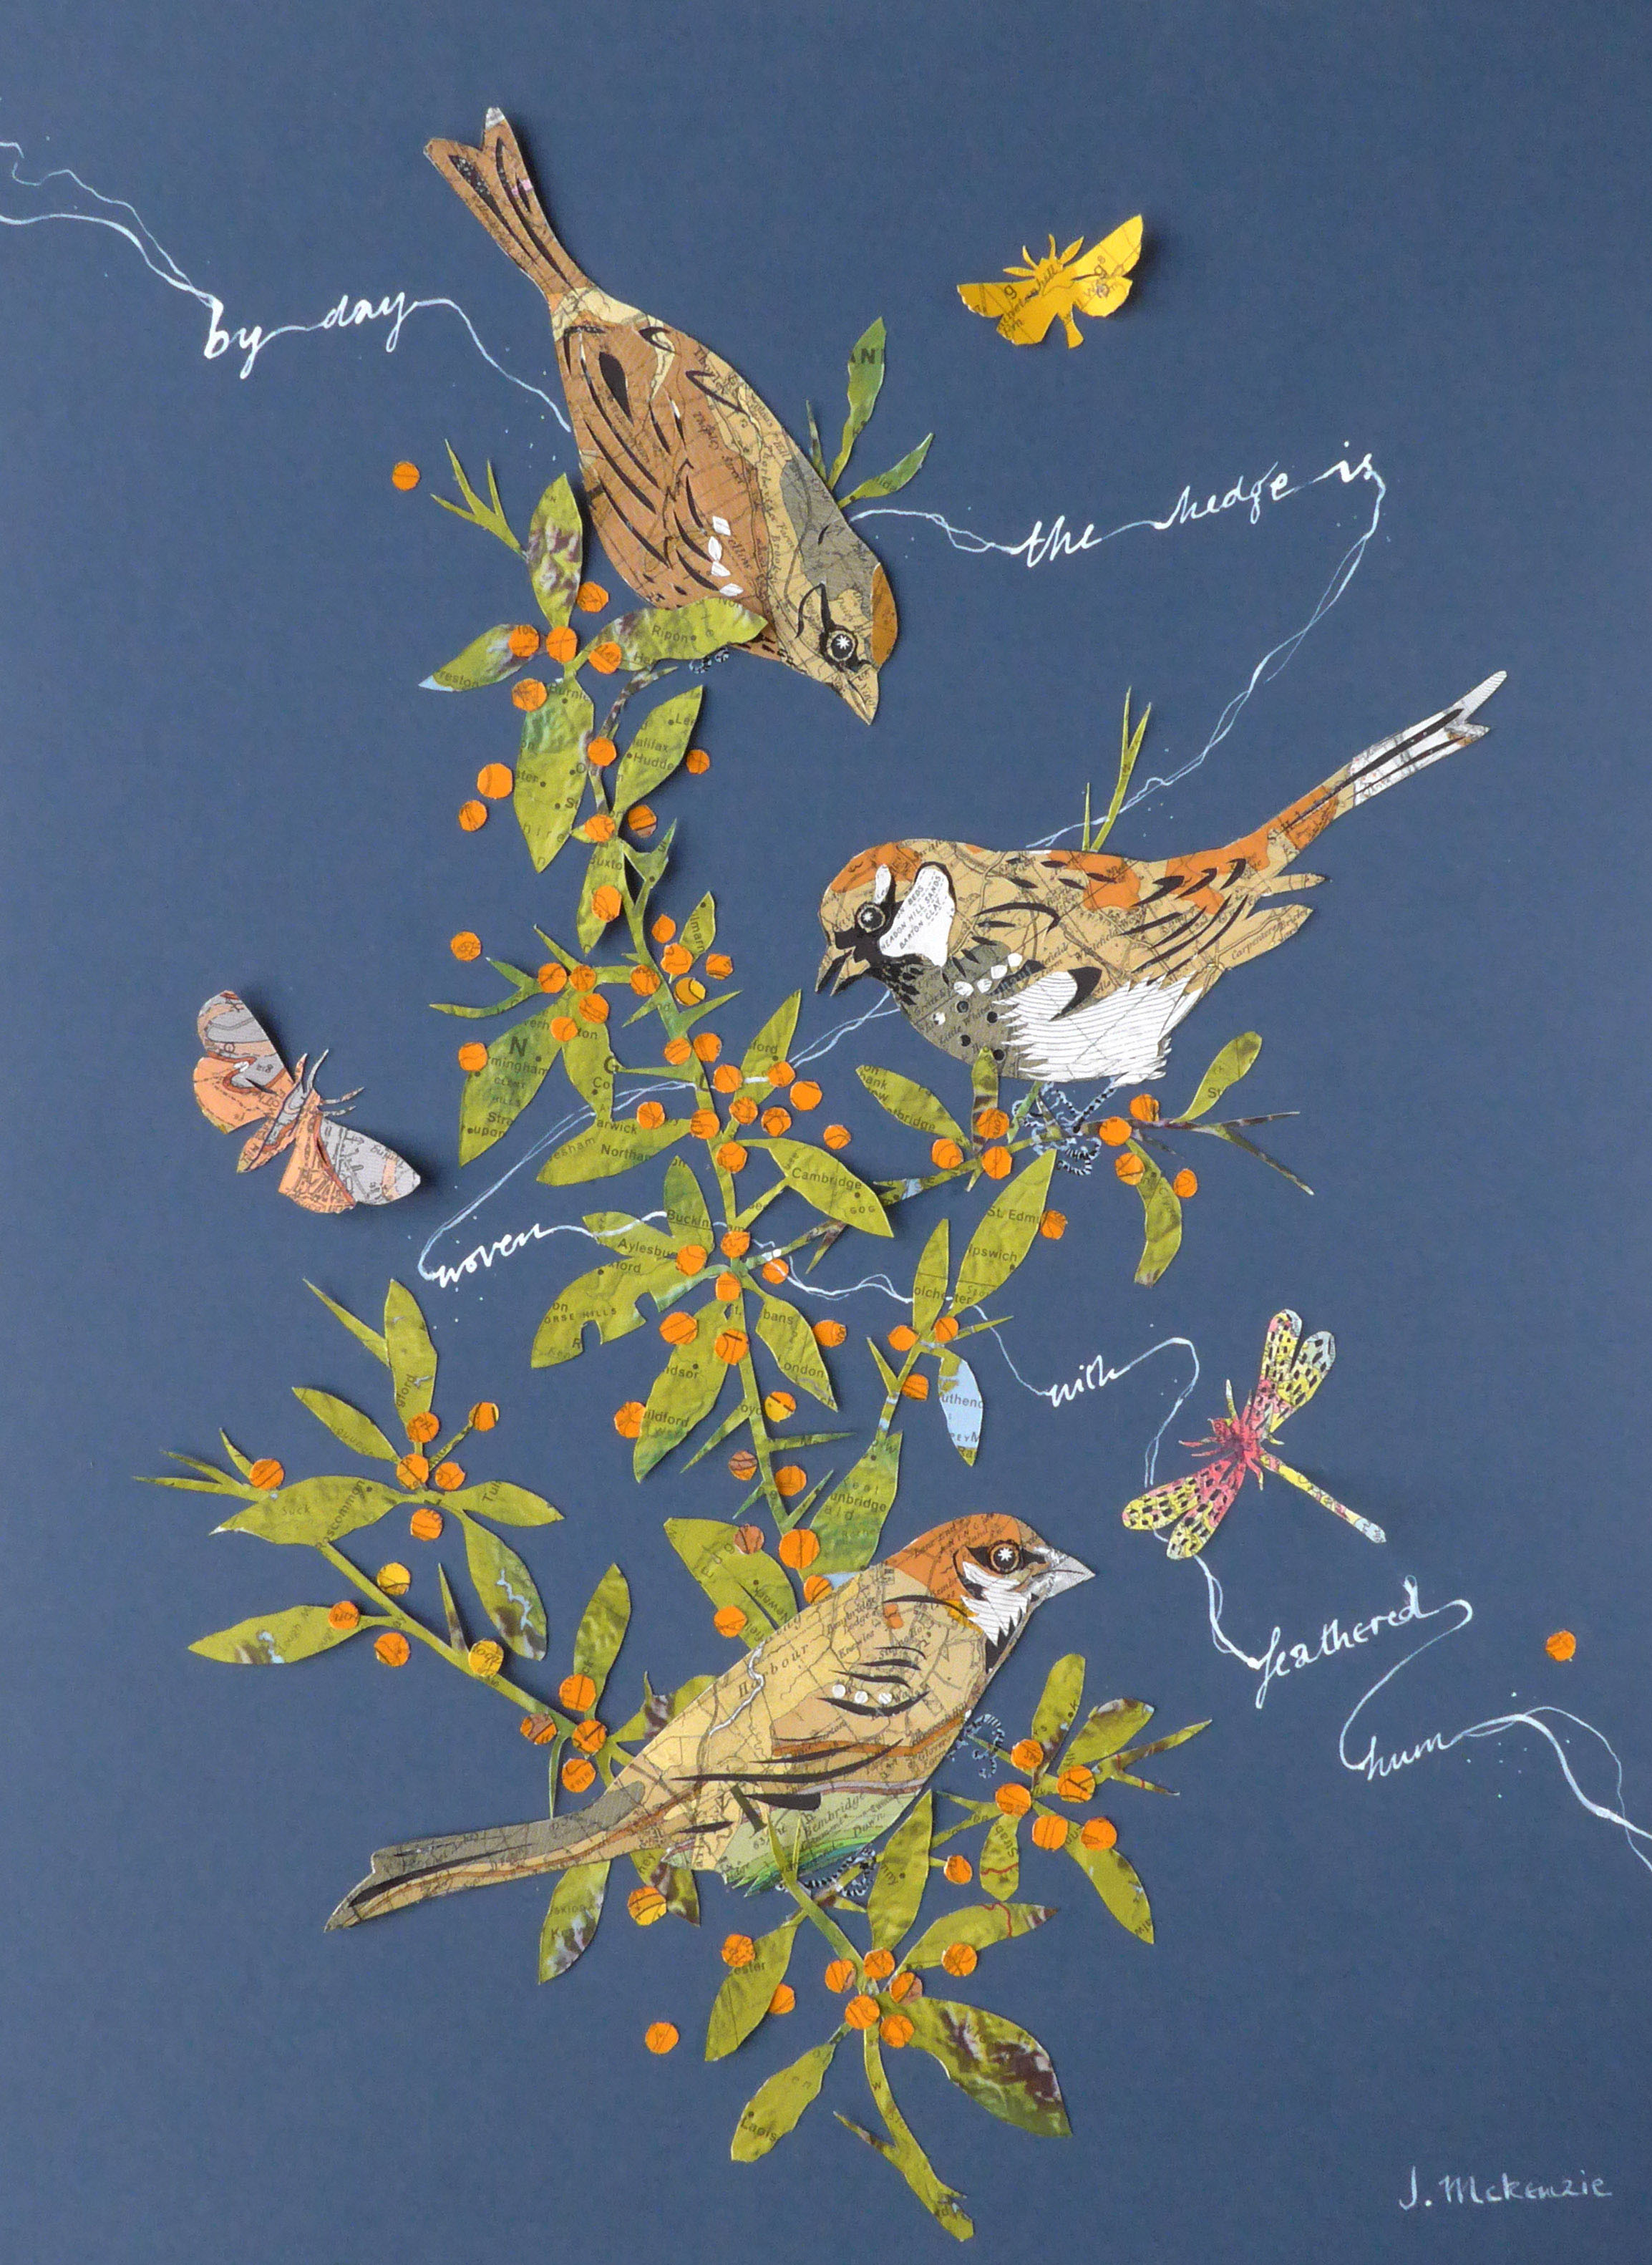 Sparrow and Pyracantha  hand cut vintage geological maps  30x40cm artwork size  SOLD